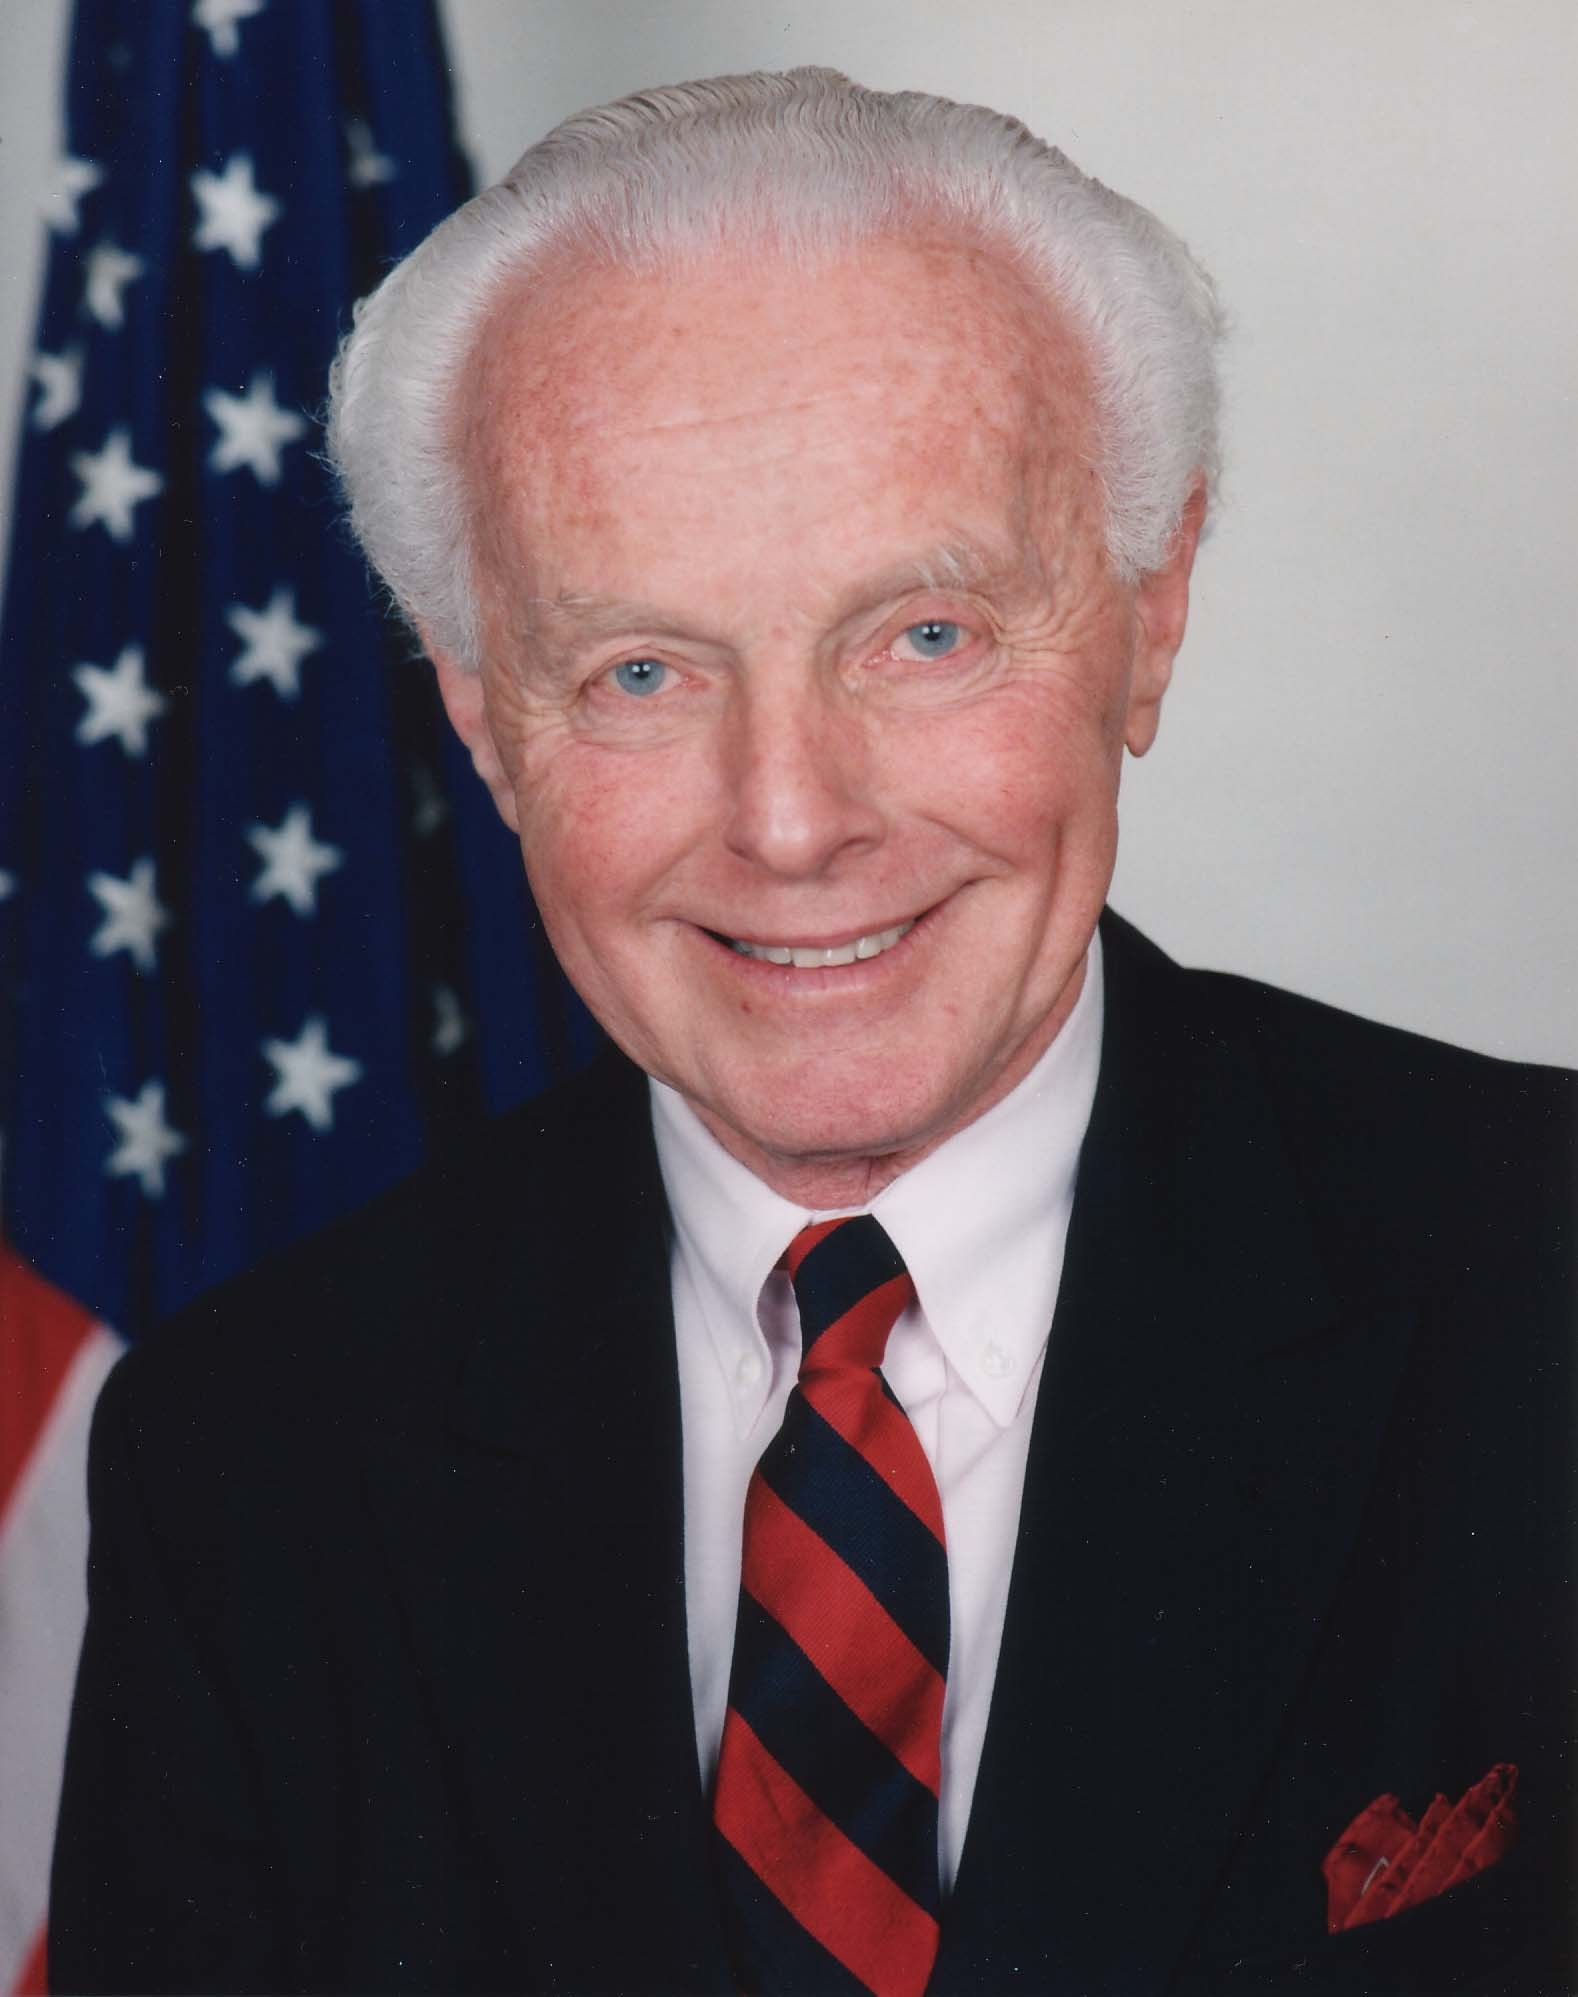 https://i1.wp.com/upload.wikimedia.org/wikipedia/commons/6/69/Tom_Lantos.jpg